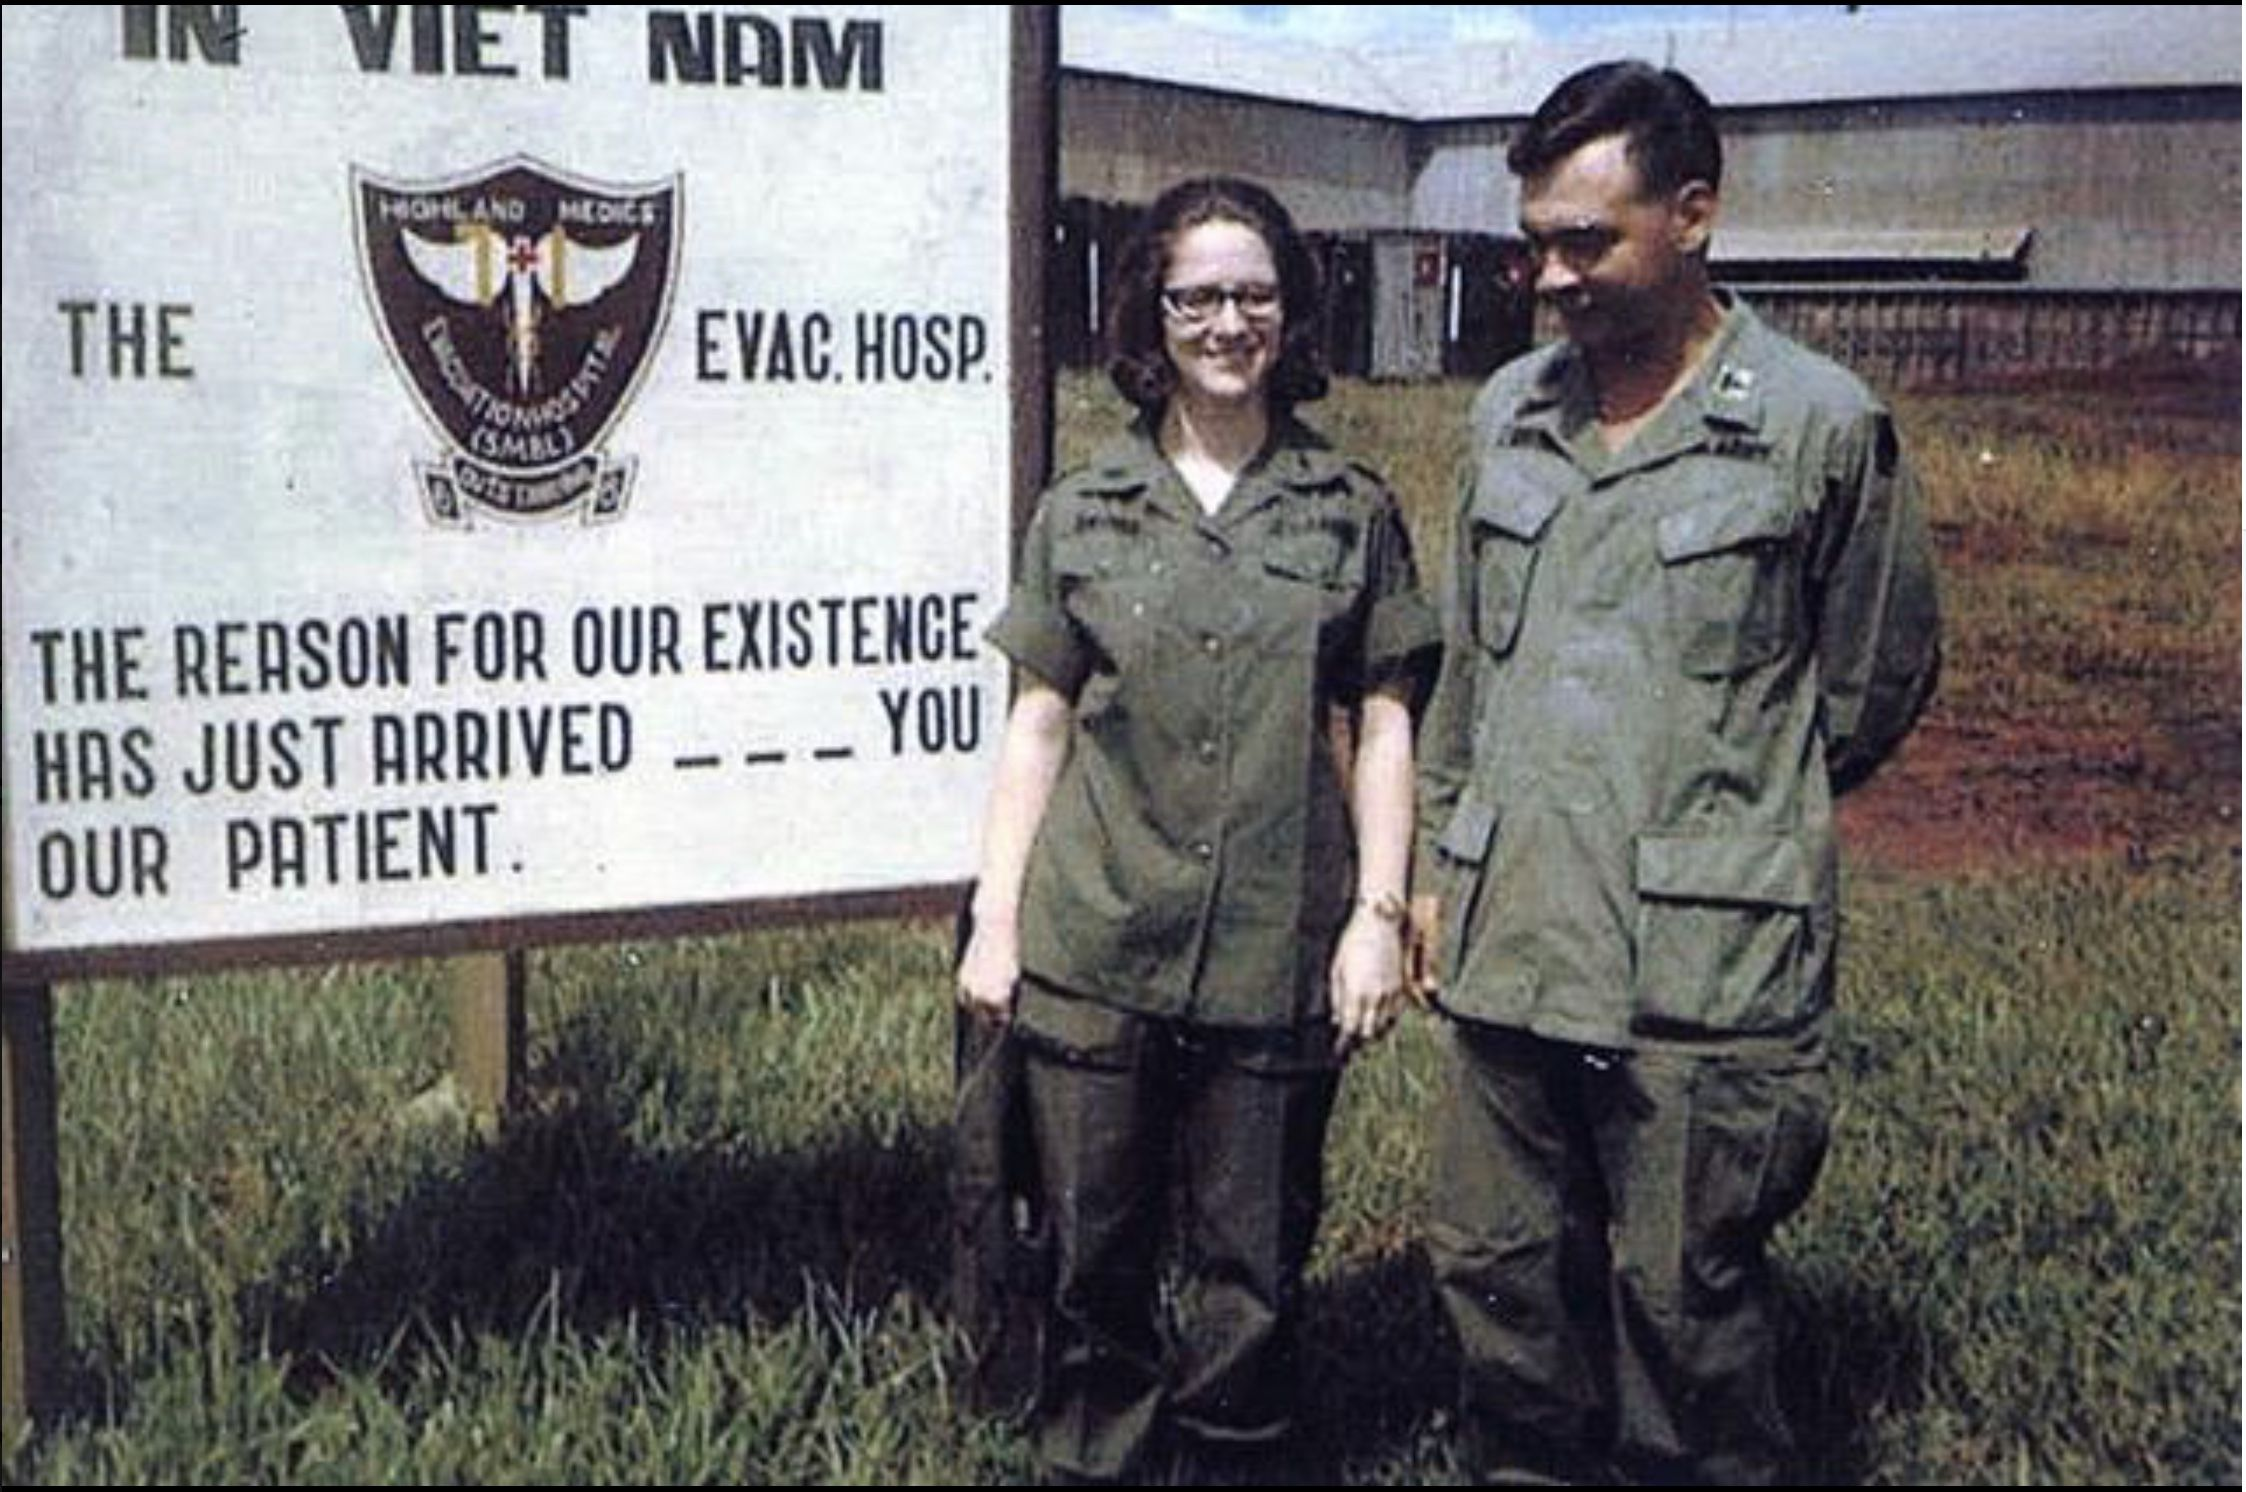 Unknown Nurse and Doctor at the 71st Evac Hospital. Army